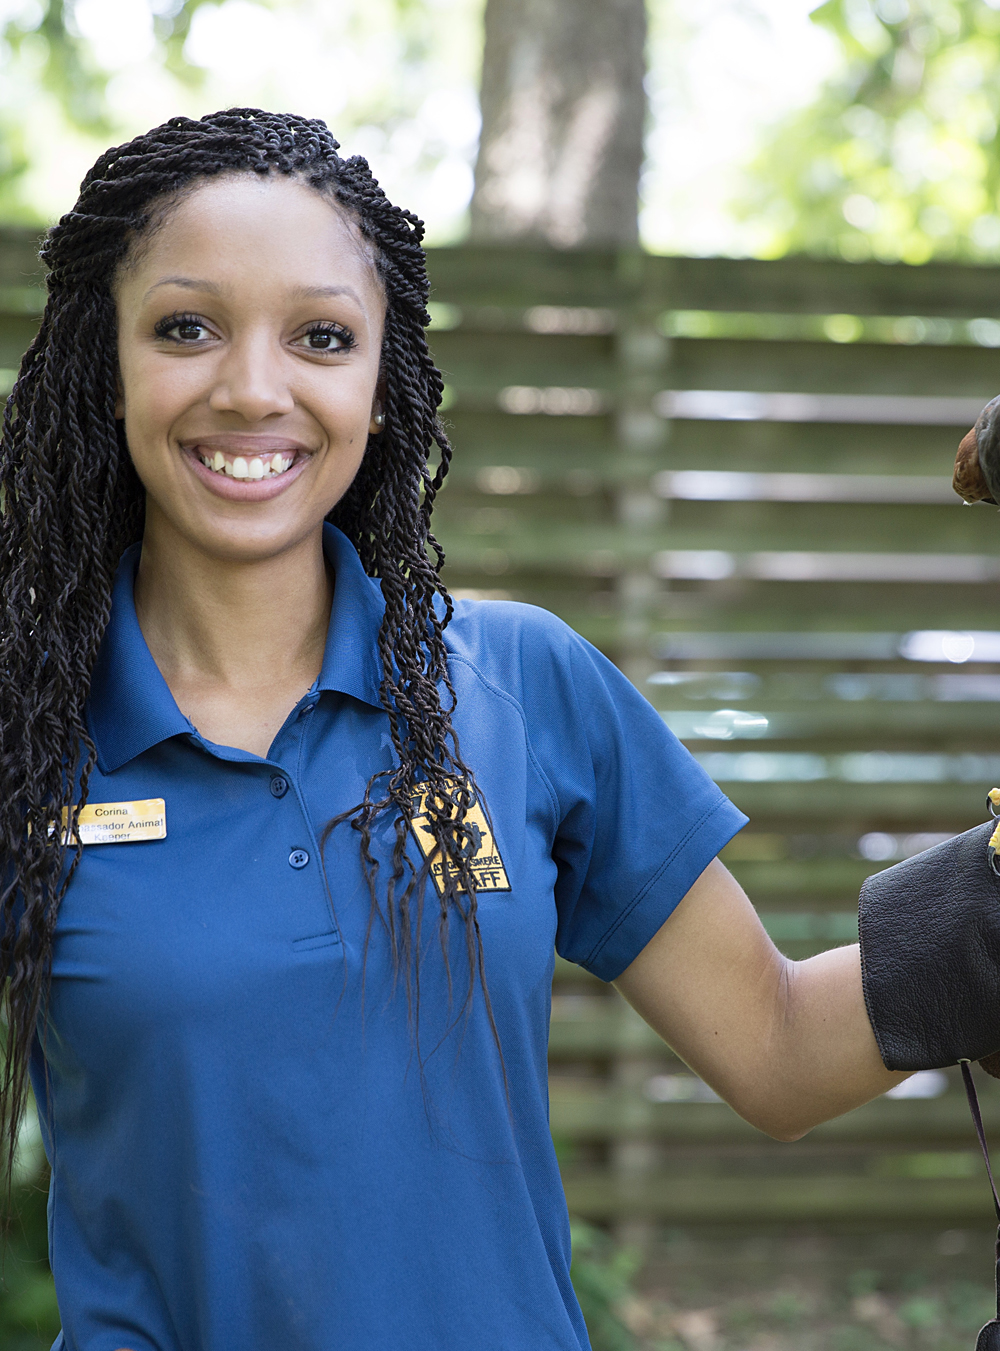 Corina Newsome, Zookeeper turned Biologist - Corina Newsome, AKA the Hood Naturalist, is a zookeeper turned biologist! As a Georgia Southern graduate student, Corina focuses on coastal research and field biology. And if you take one look at her Instagram, you'll quickly notice that she has a passion for animals of all kinds.